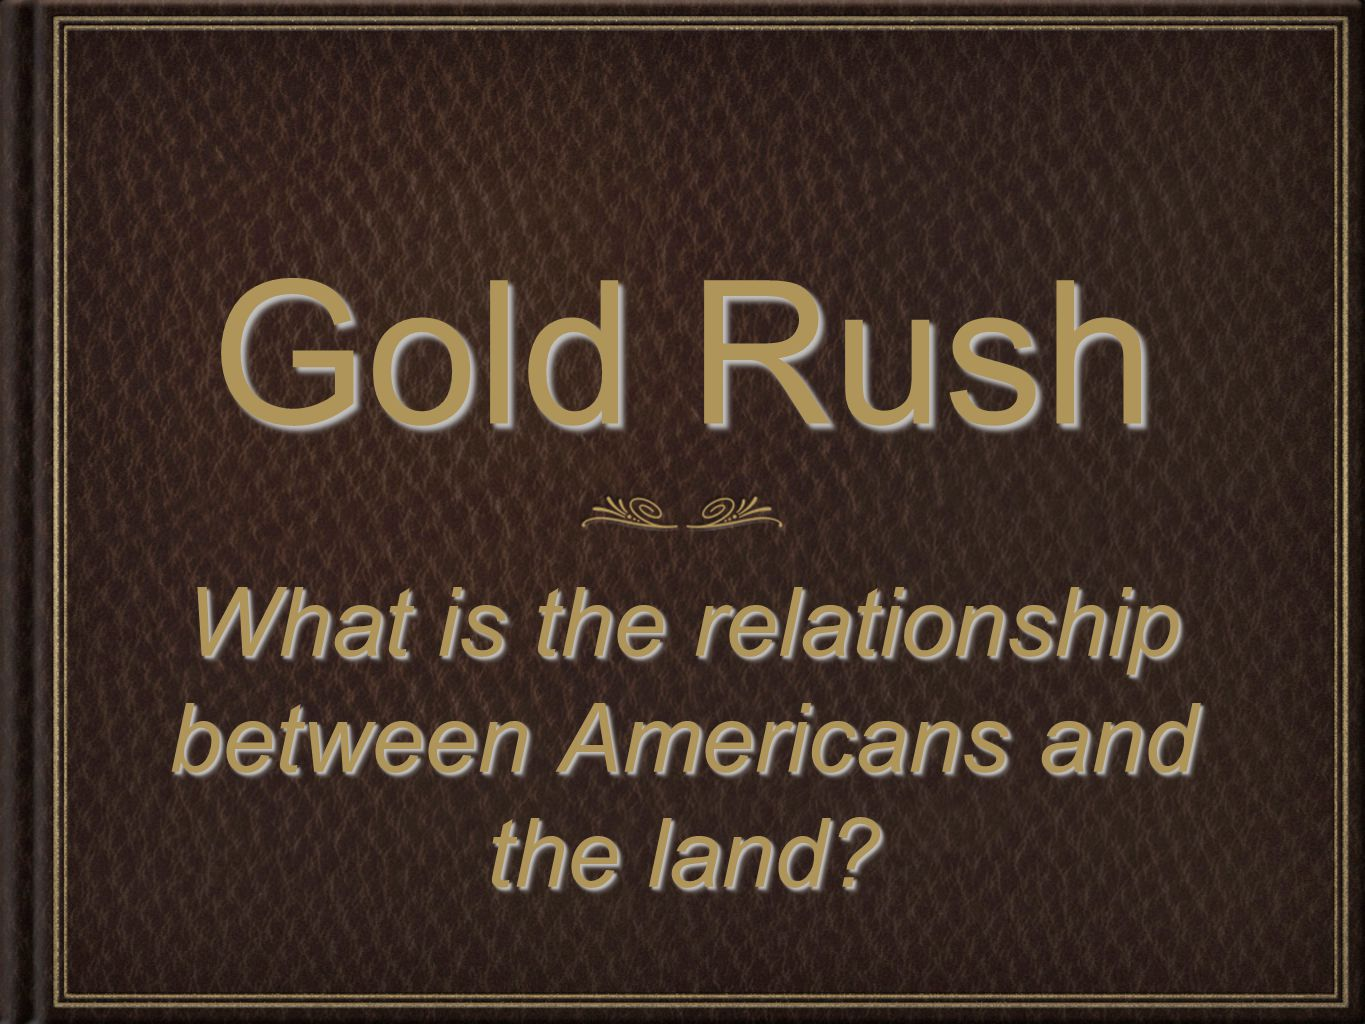 What is the relationship between Americans and the land